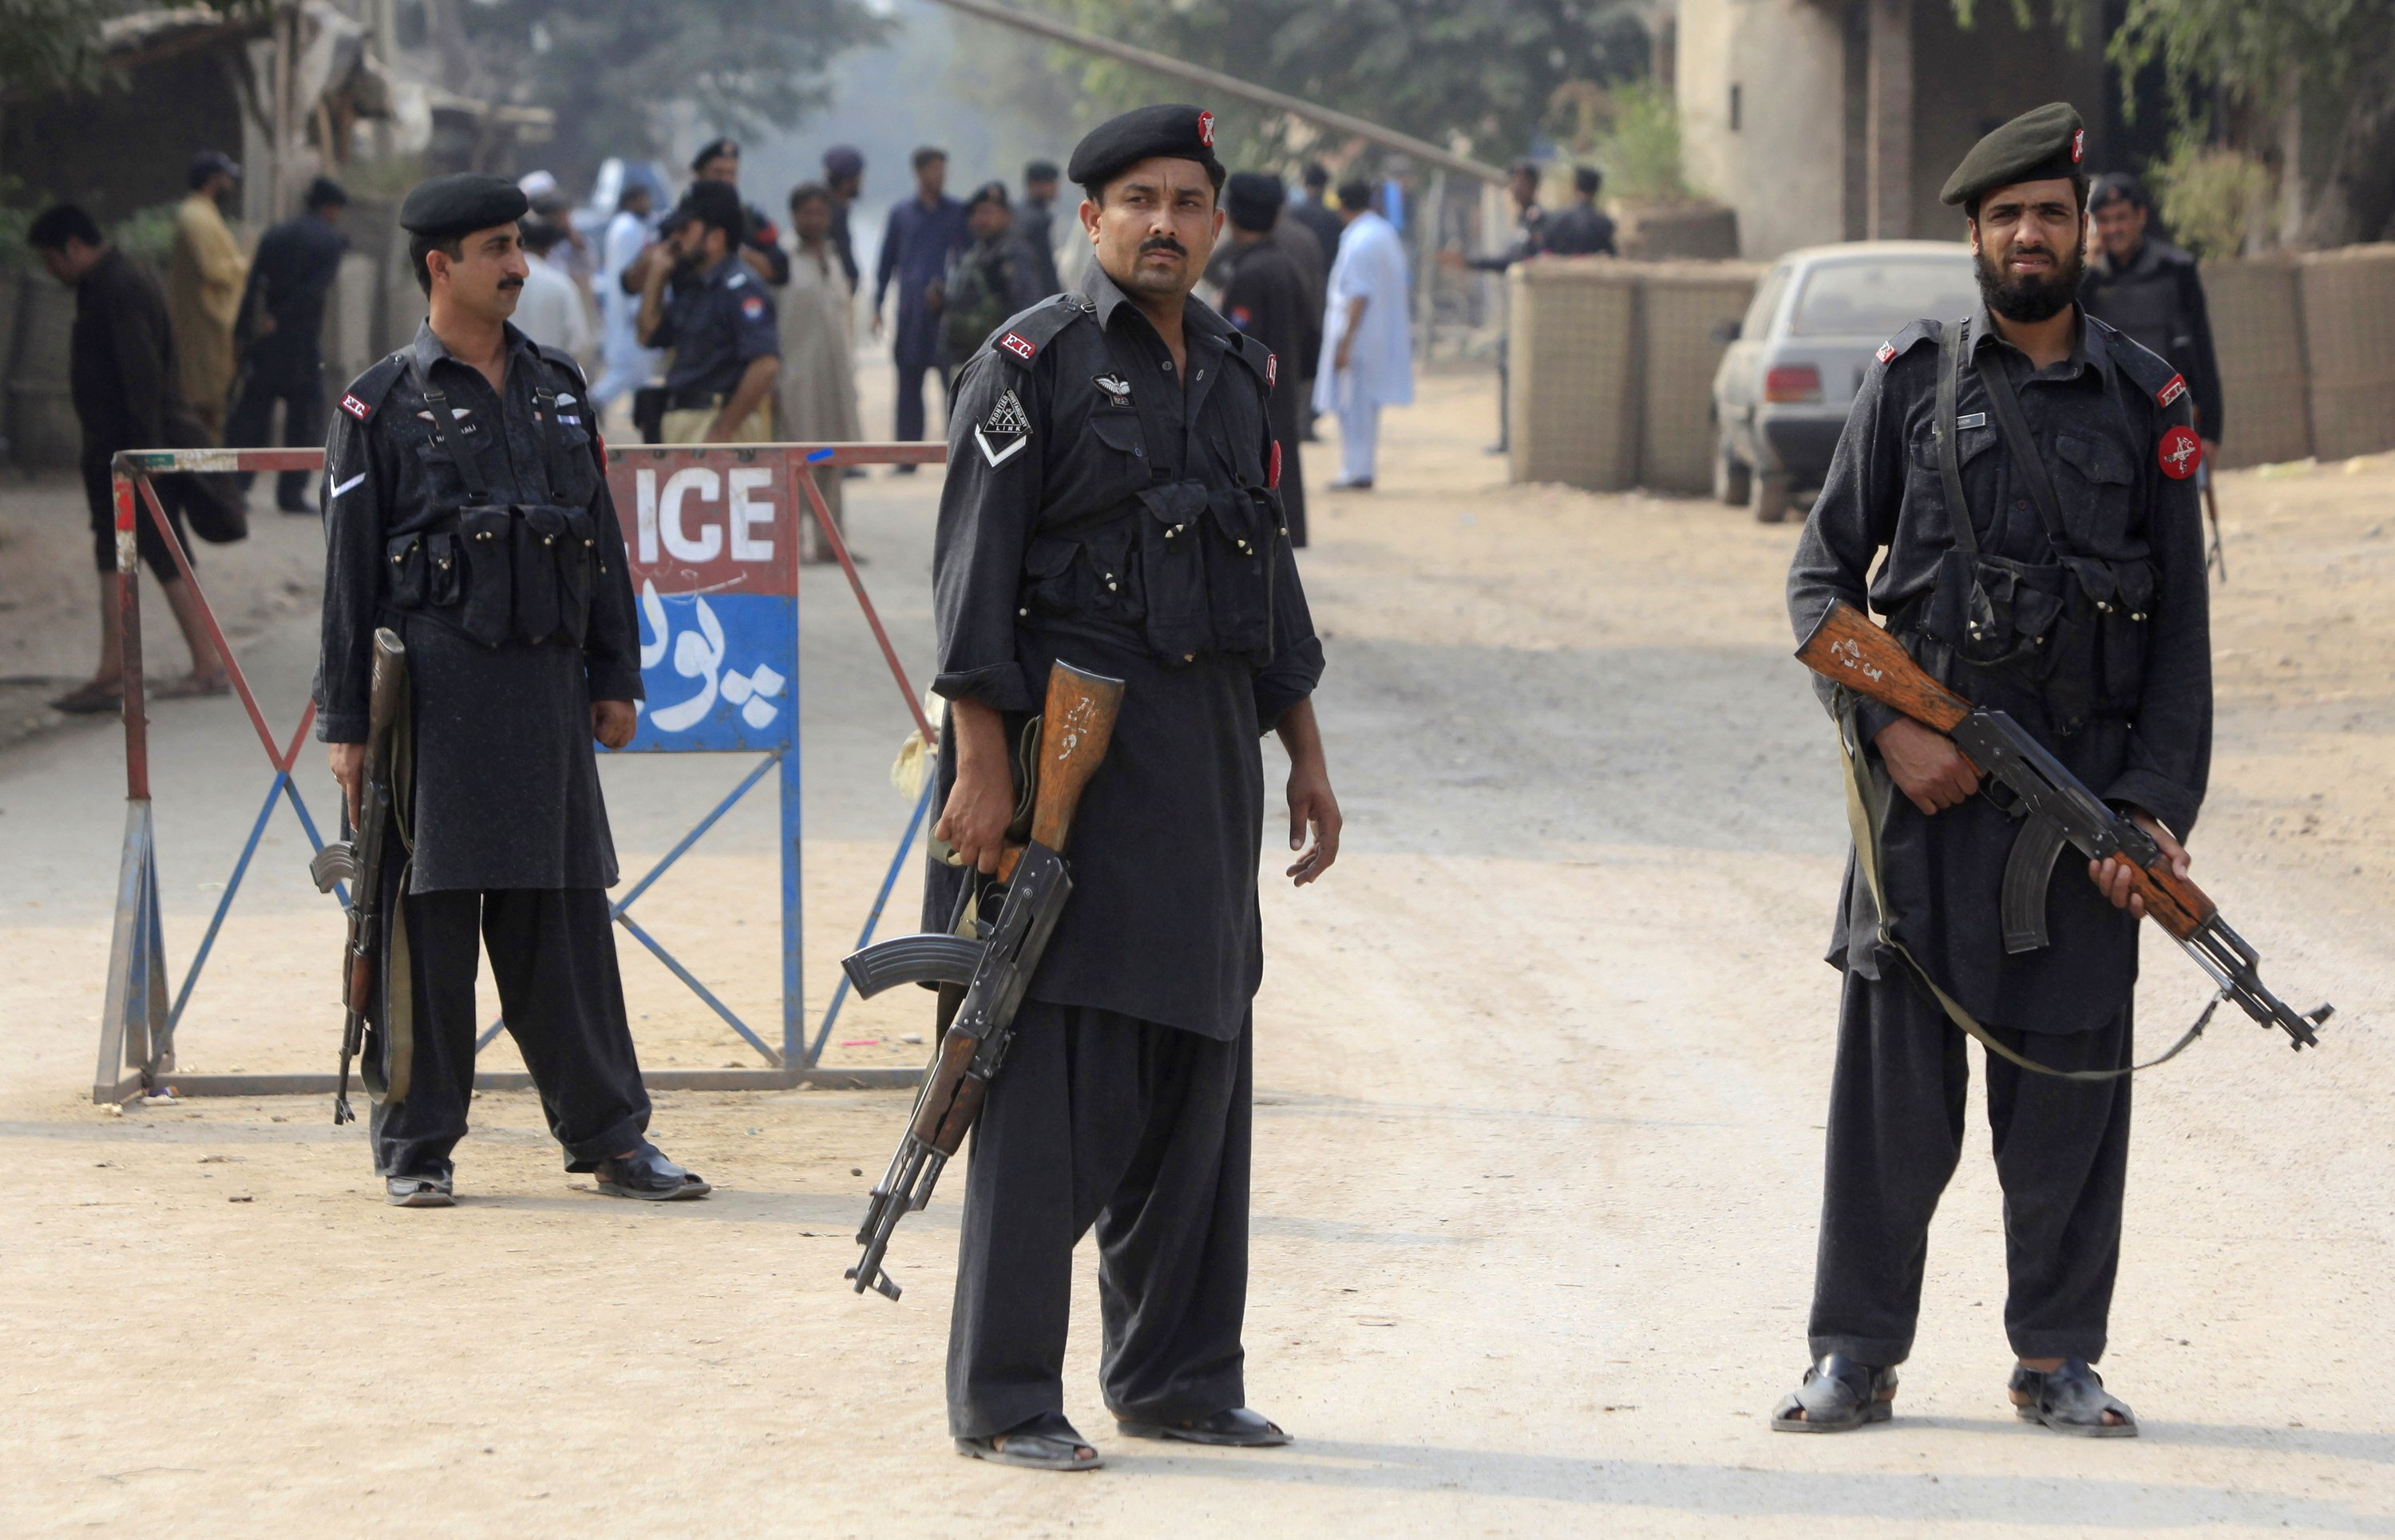 policemen stand guard in shahpur village peshawar on saturday june 24 2017 where a hideout of suspected terrorists was raided photo reuters